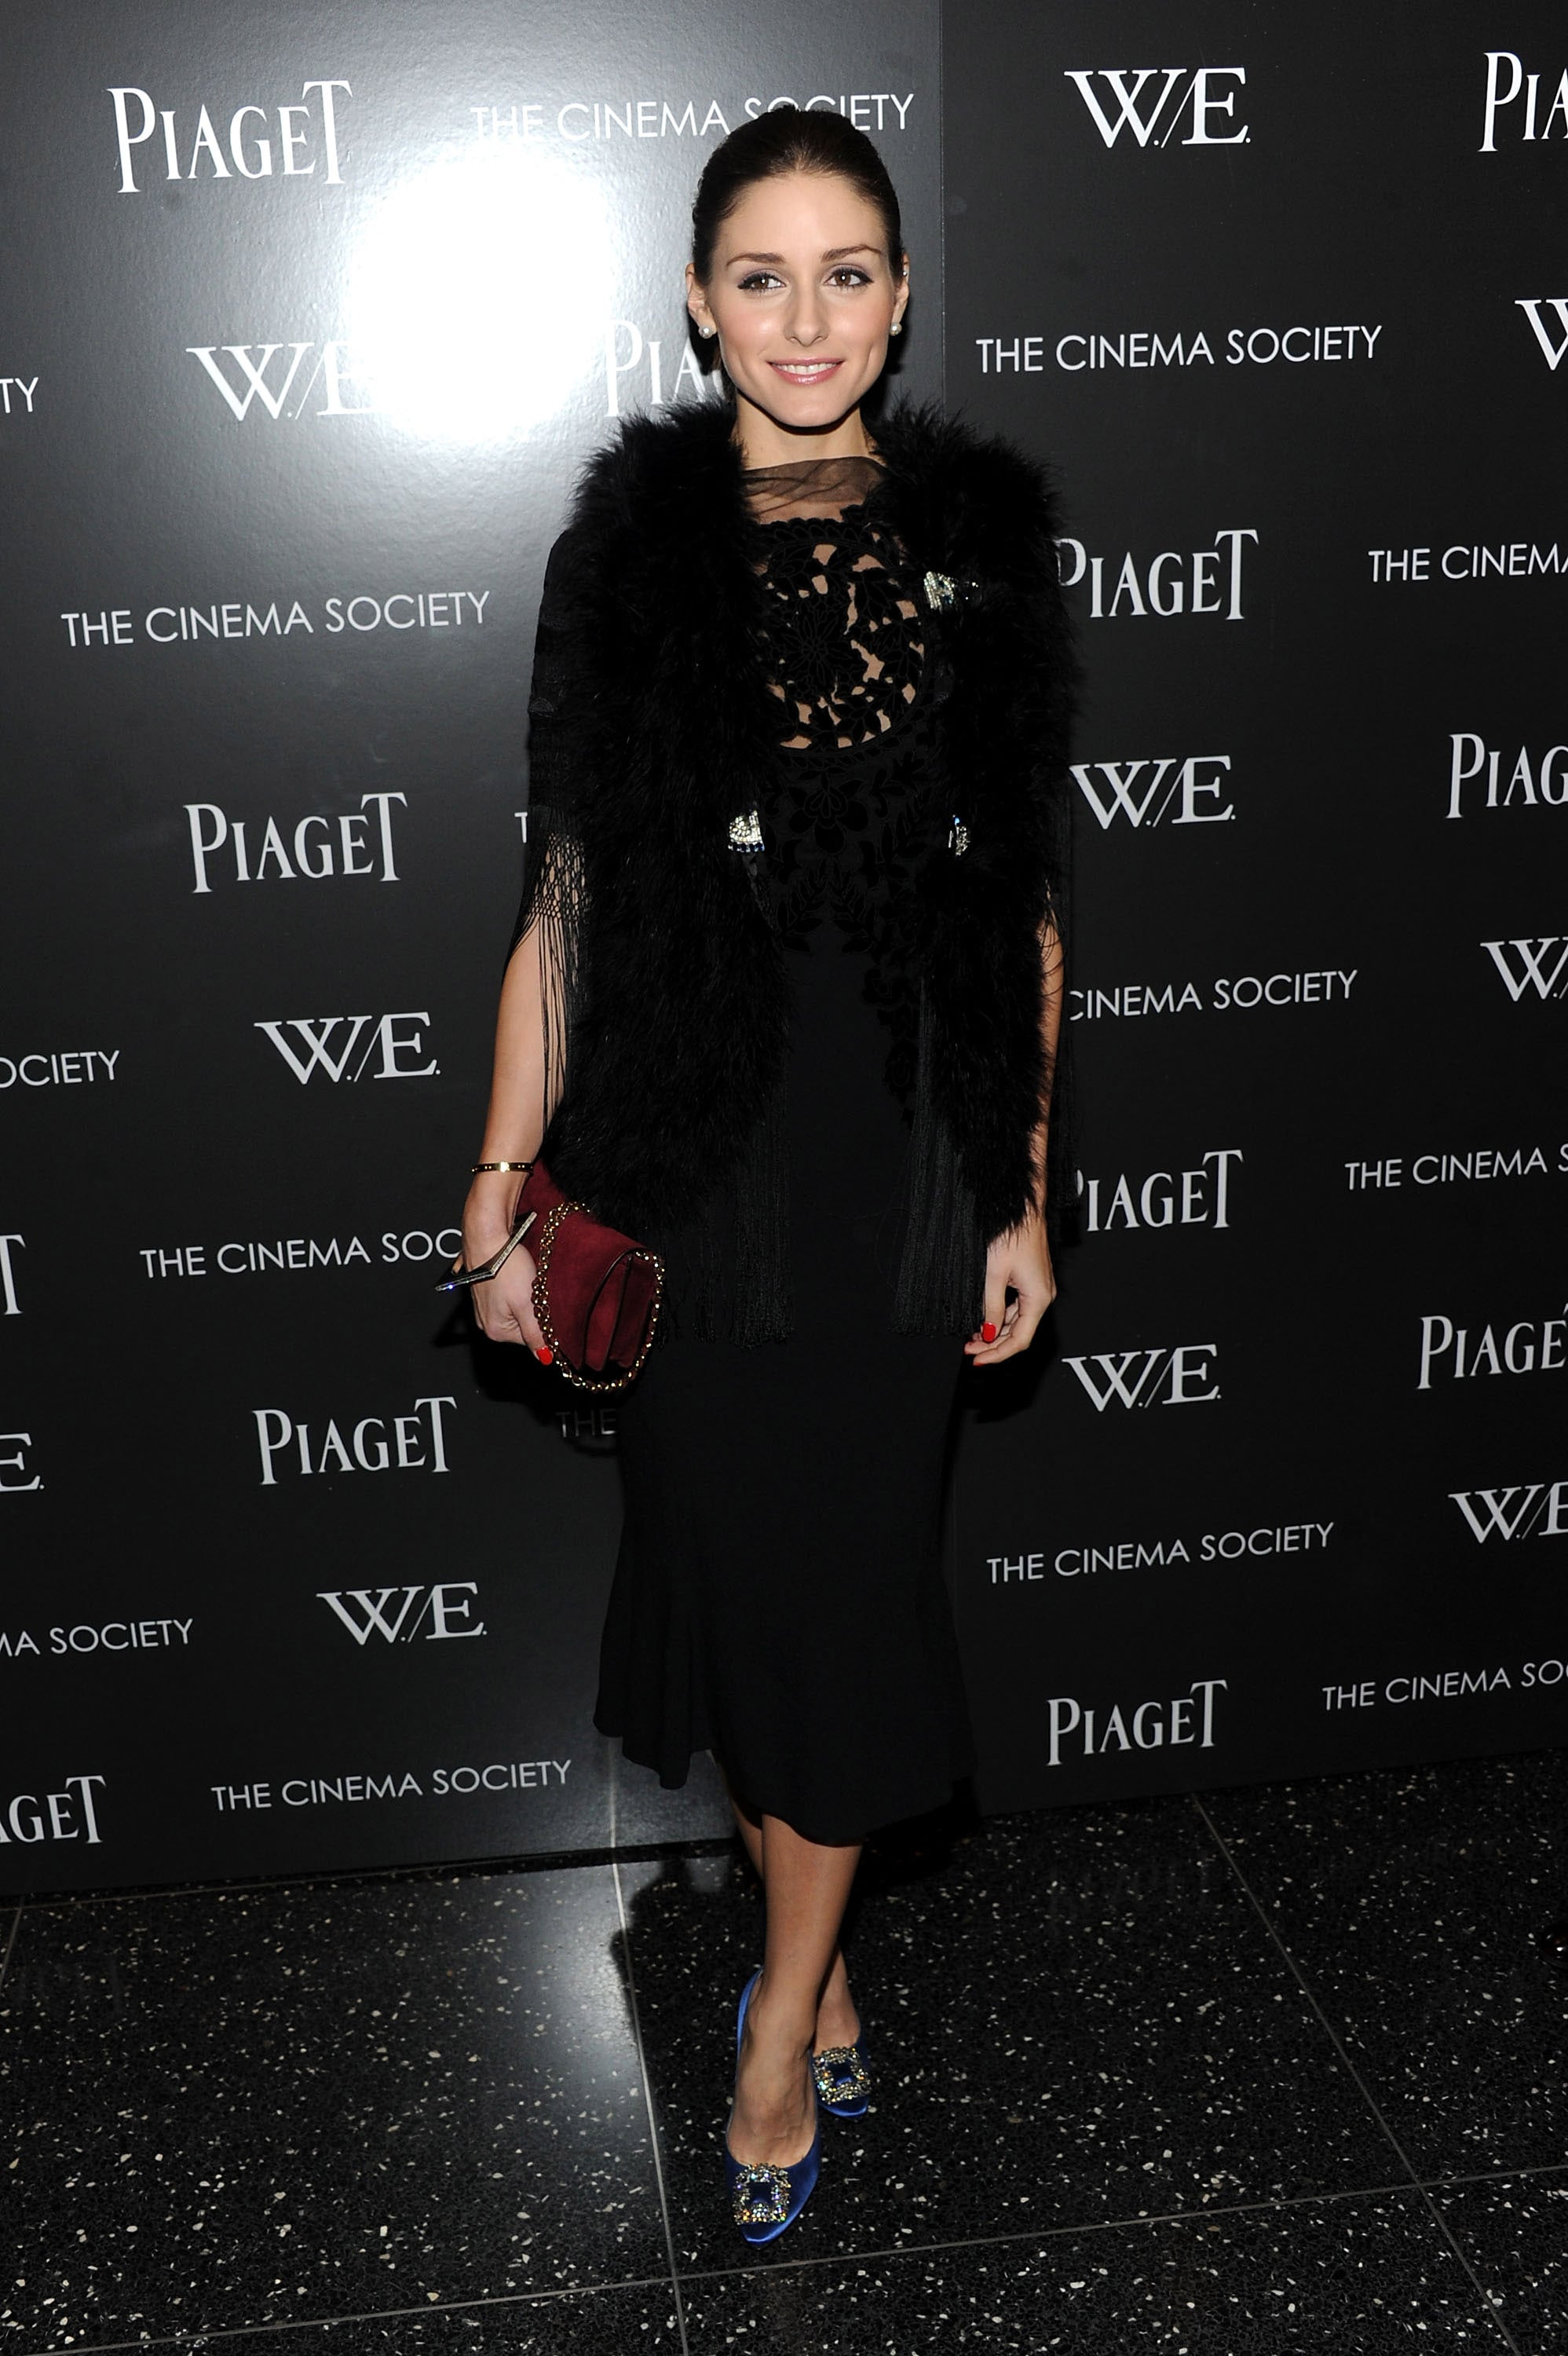 Olivia Palermo mixed fur and delicate sheer fabric for a chic evening look at the Cinema Society and Piaget film screening.